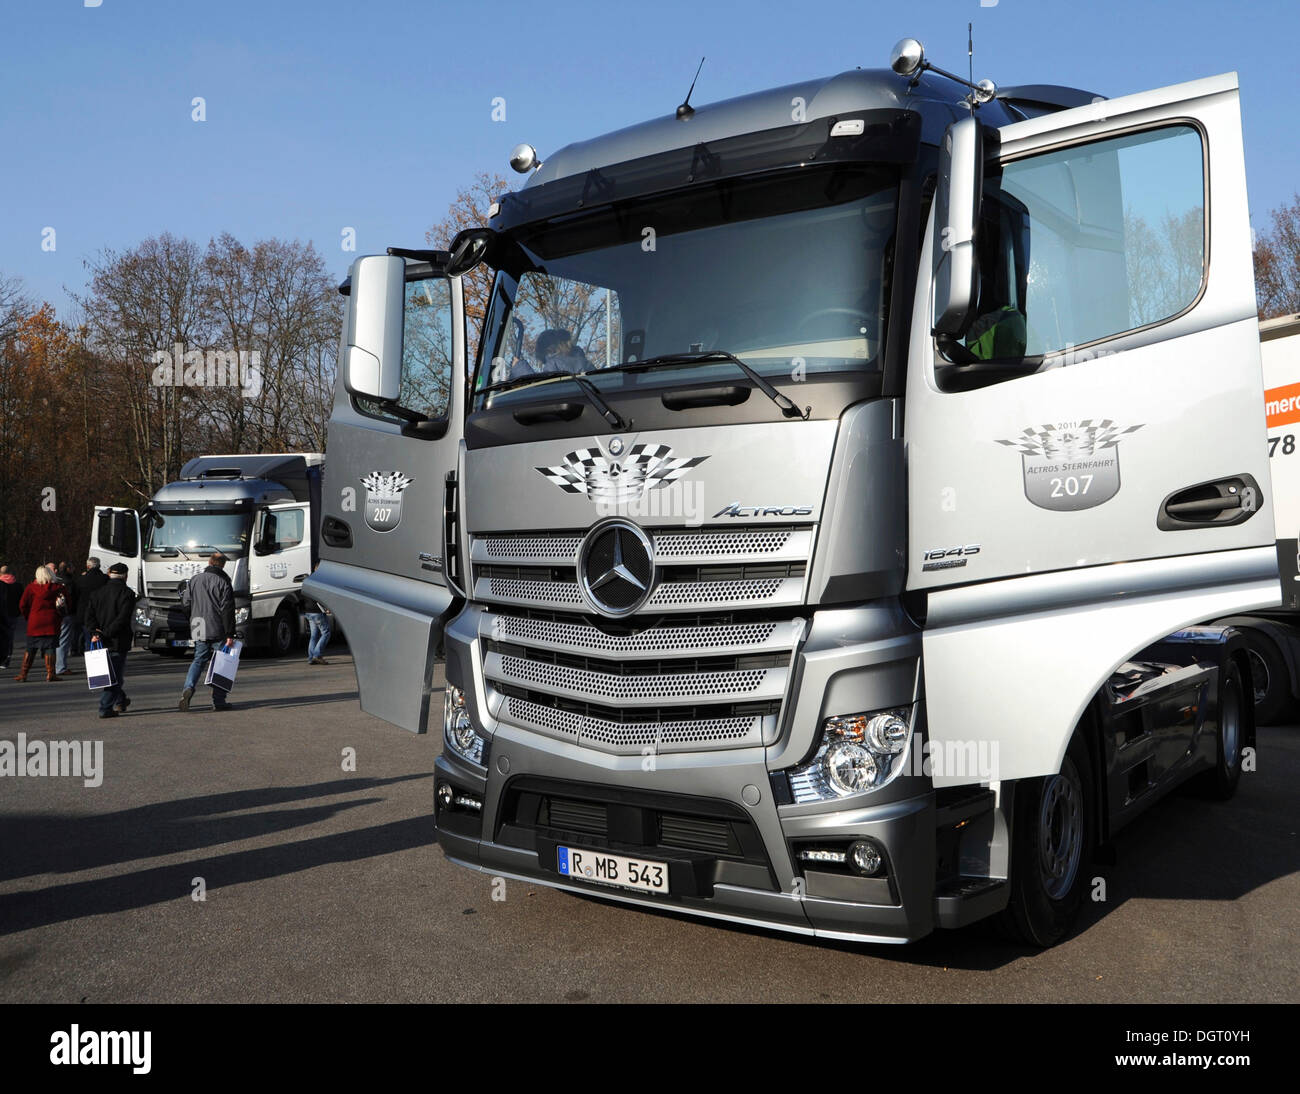 heavy goods vehicle the new actros truck a commercial vehicle stock photo royalty free image. Black Bedroom Furniture Sets. Home Design Ideas